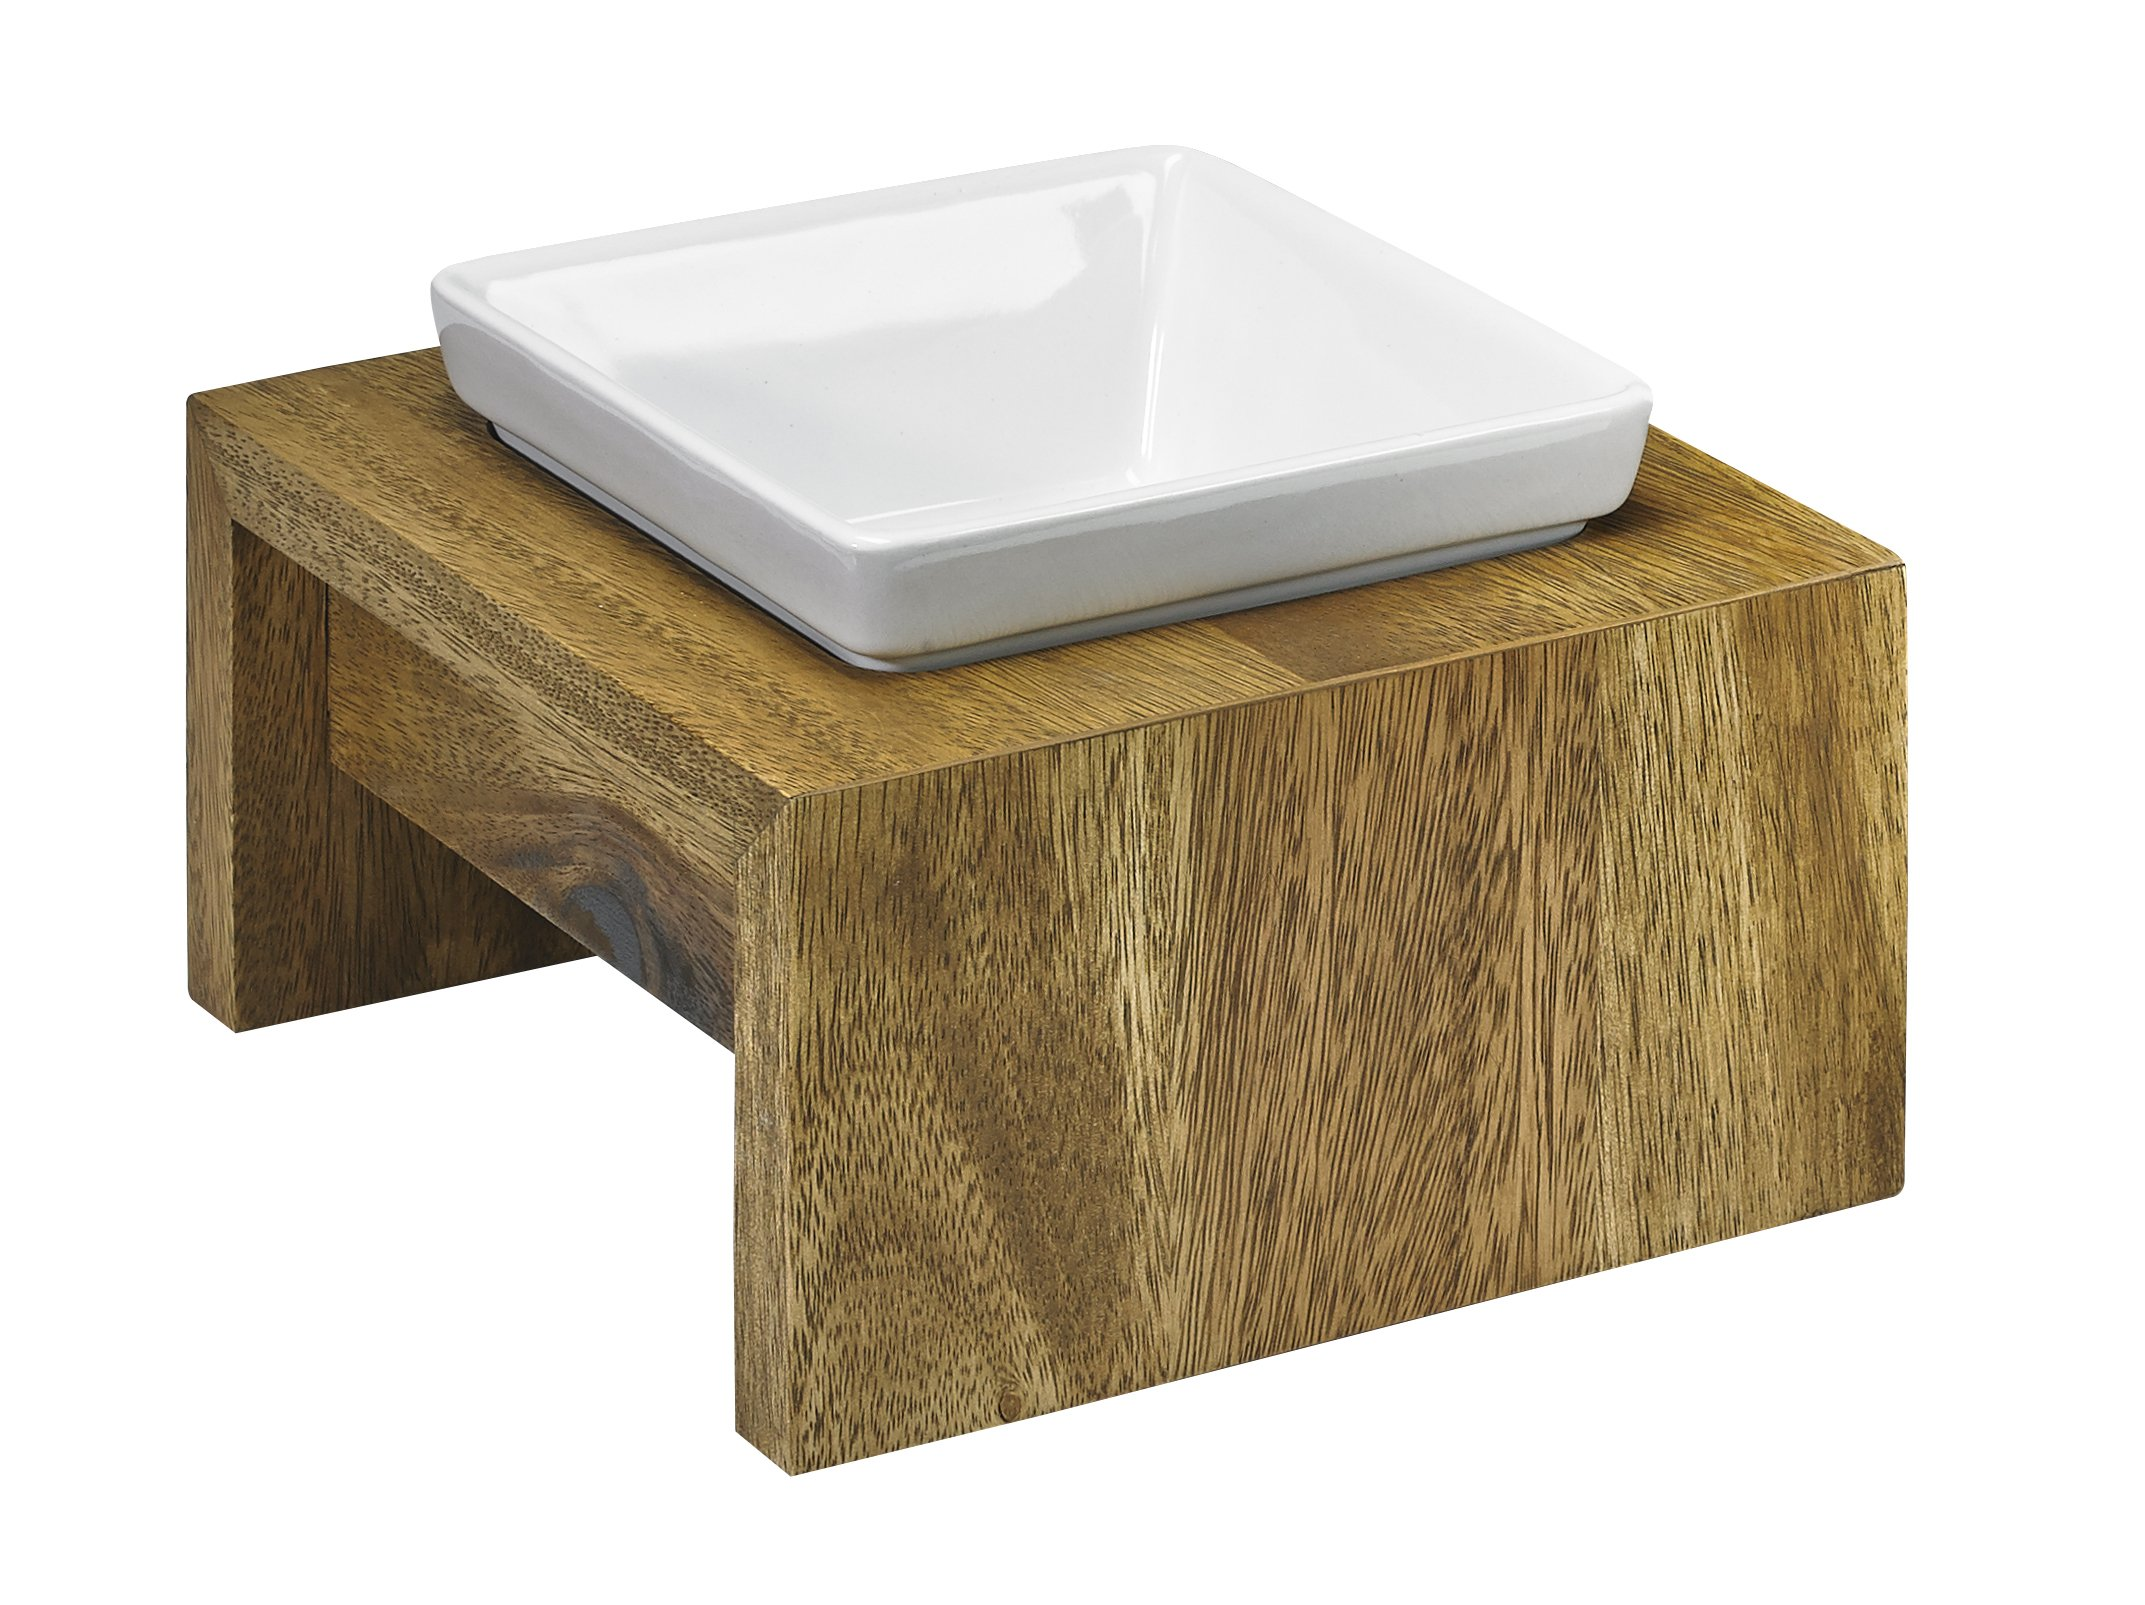 Bowsers Artisan Diner - Single Dog Feeder, Bamboo - Small - 7''x7''x4''